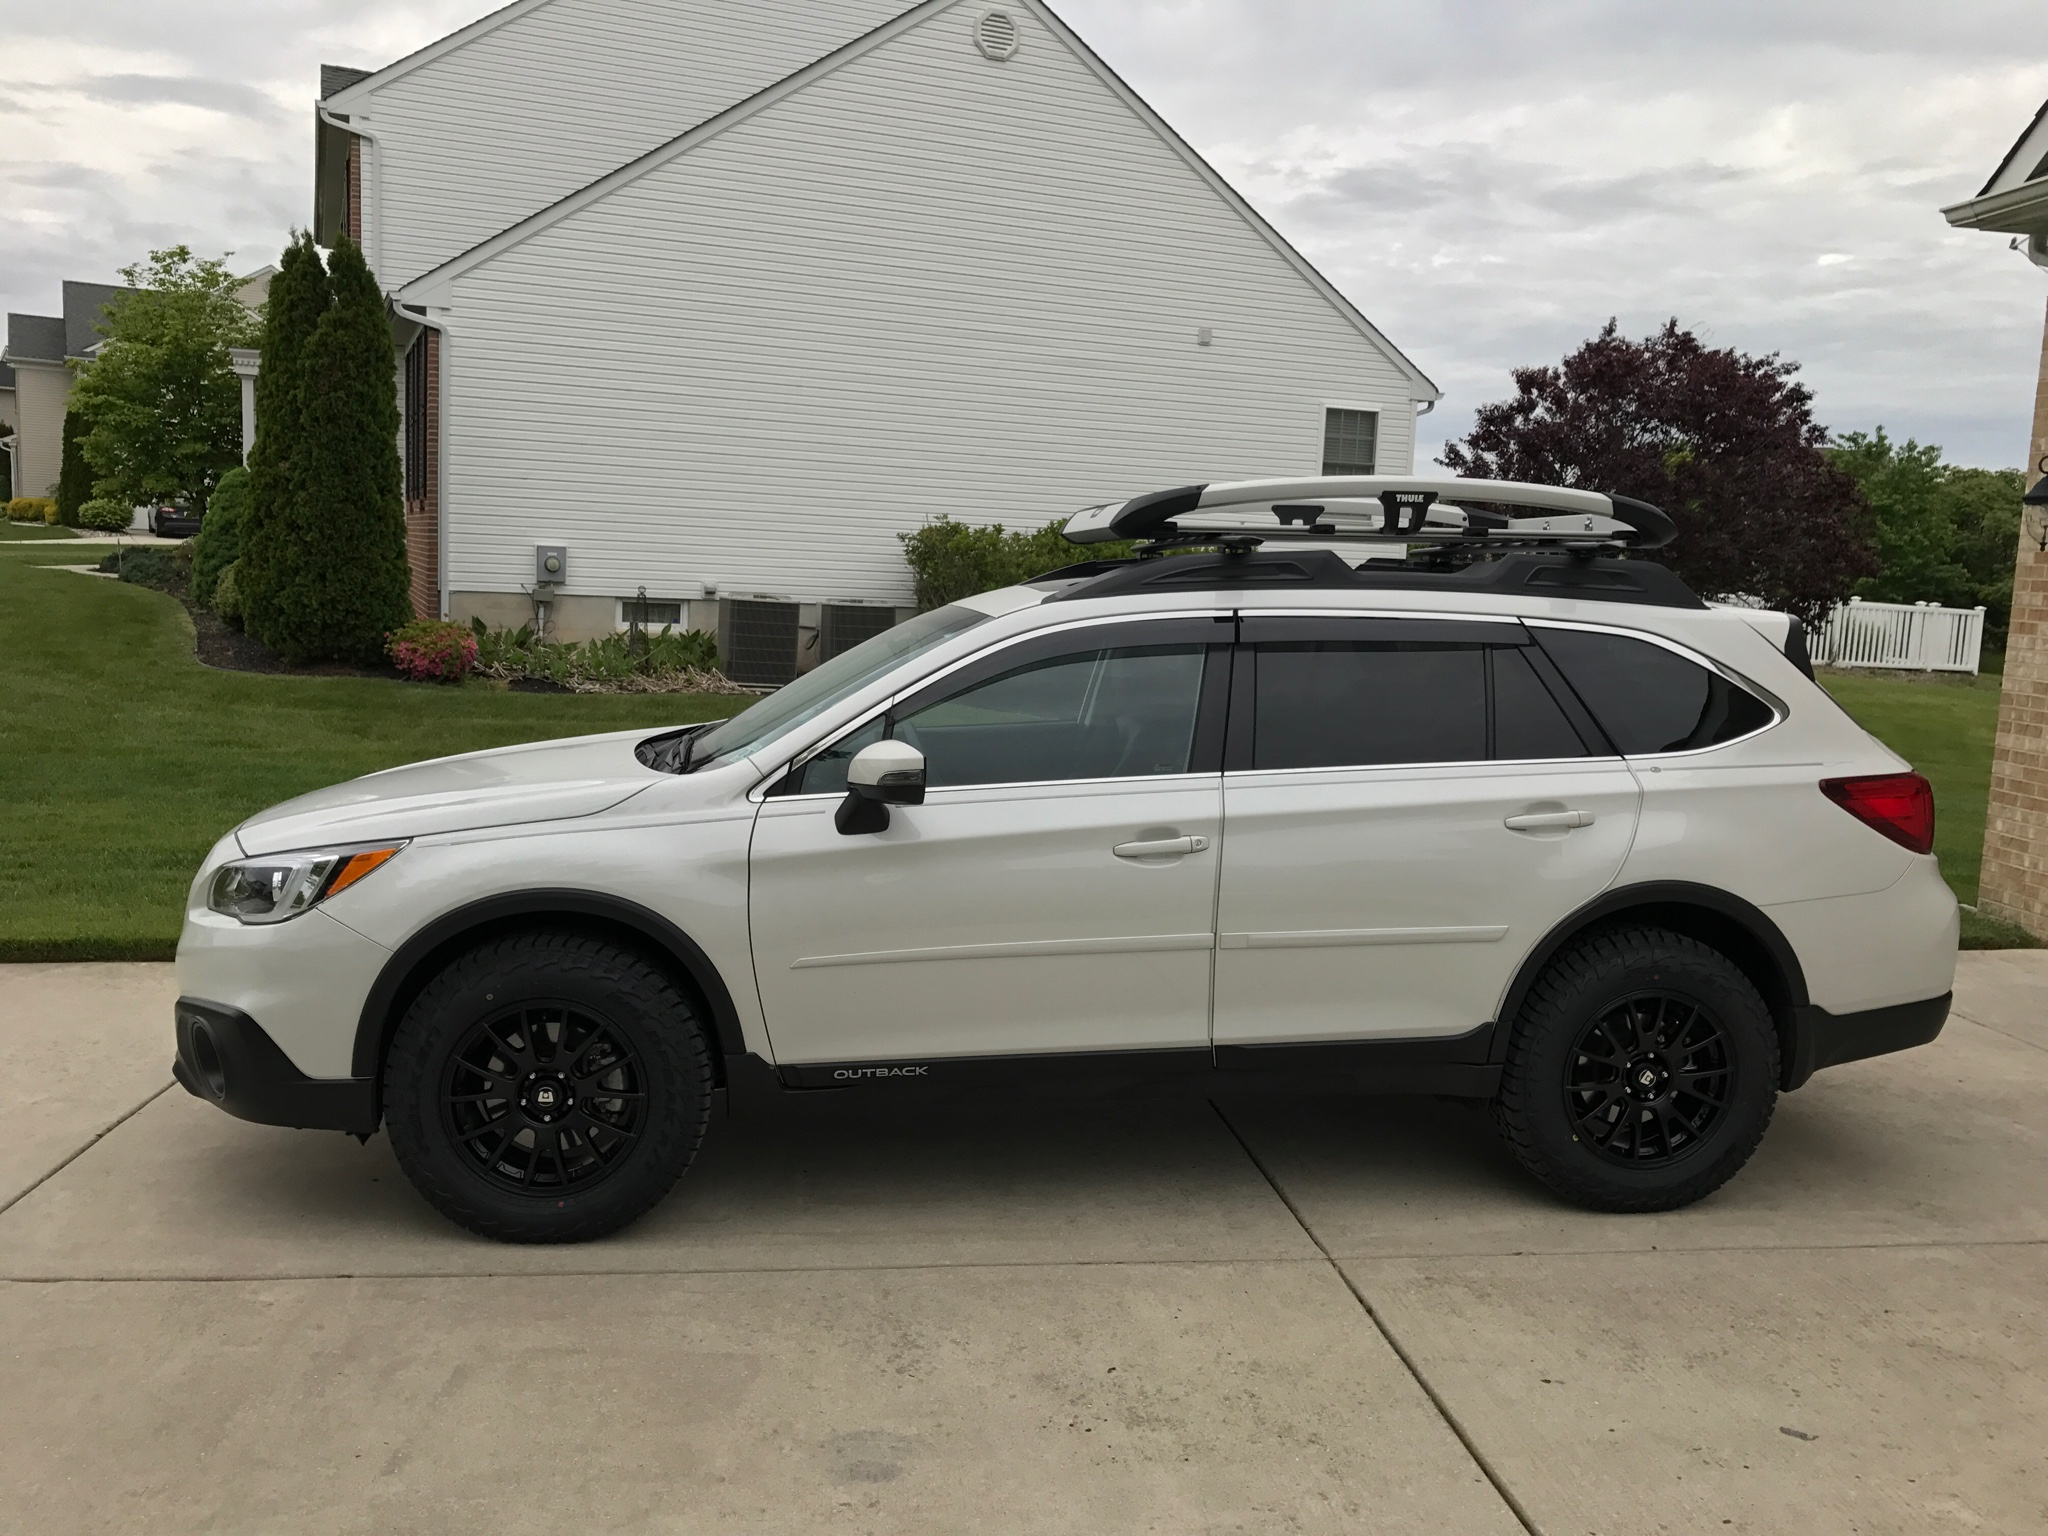 hitch mount spare tire carrier on 2 hitches subaru outback subaru outback forums. Black Bedroom Furniture Sets. Home Design Ideas